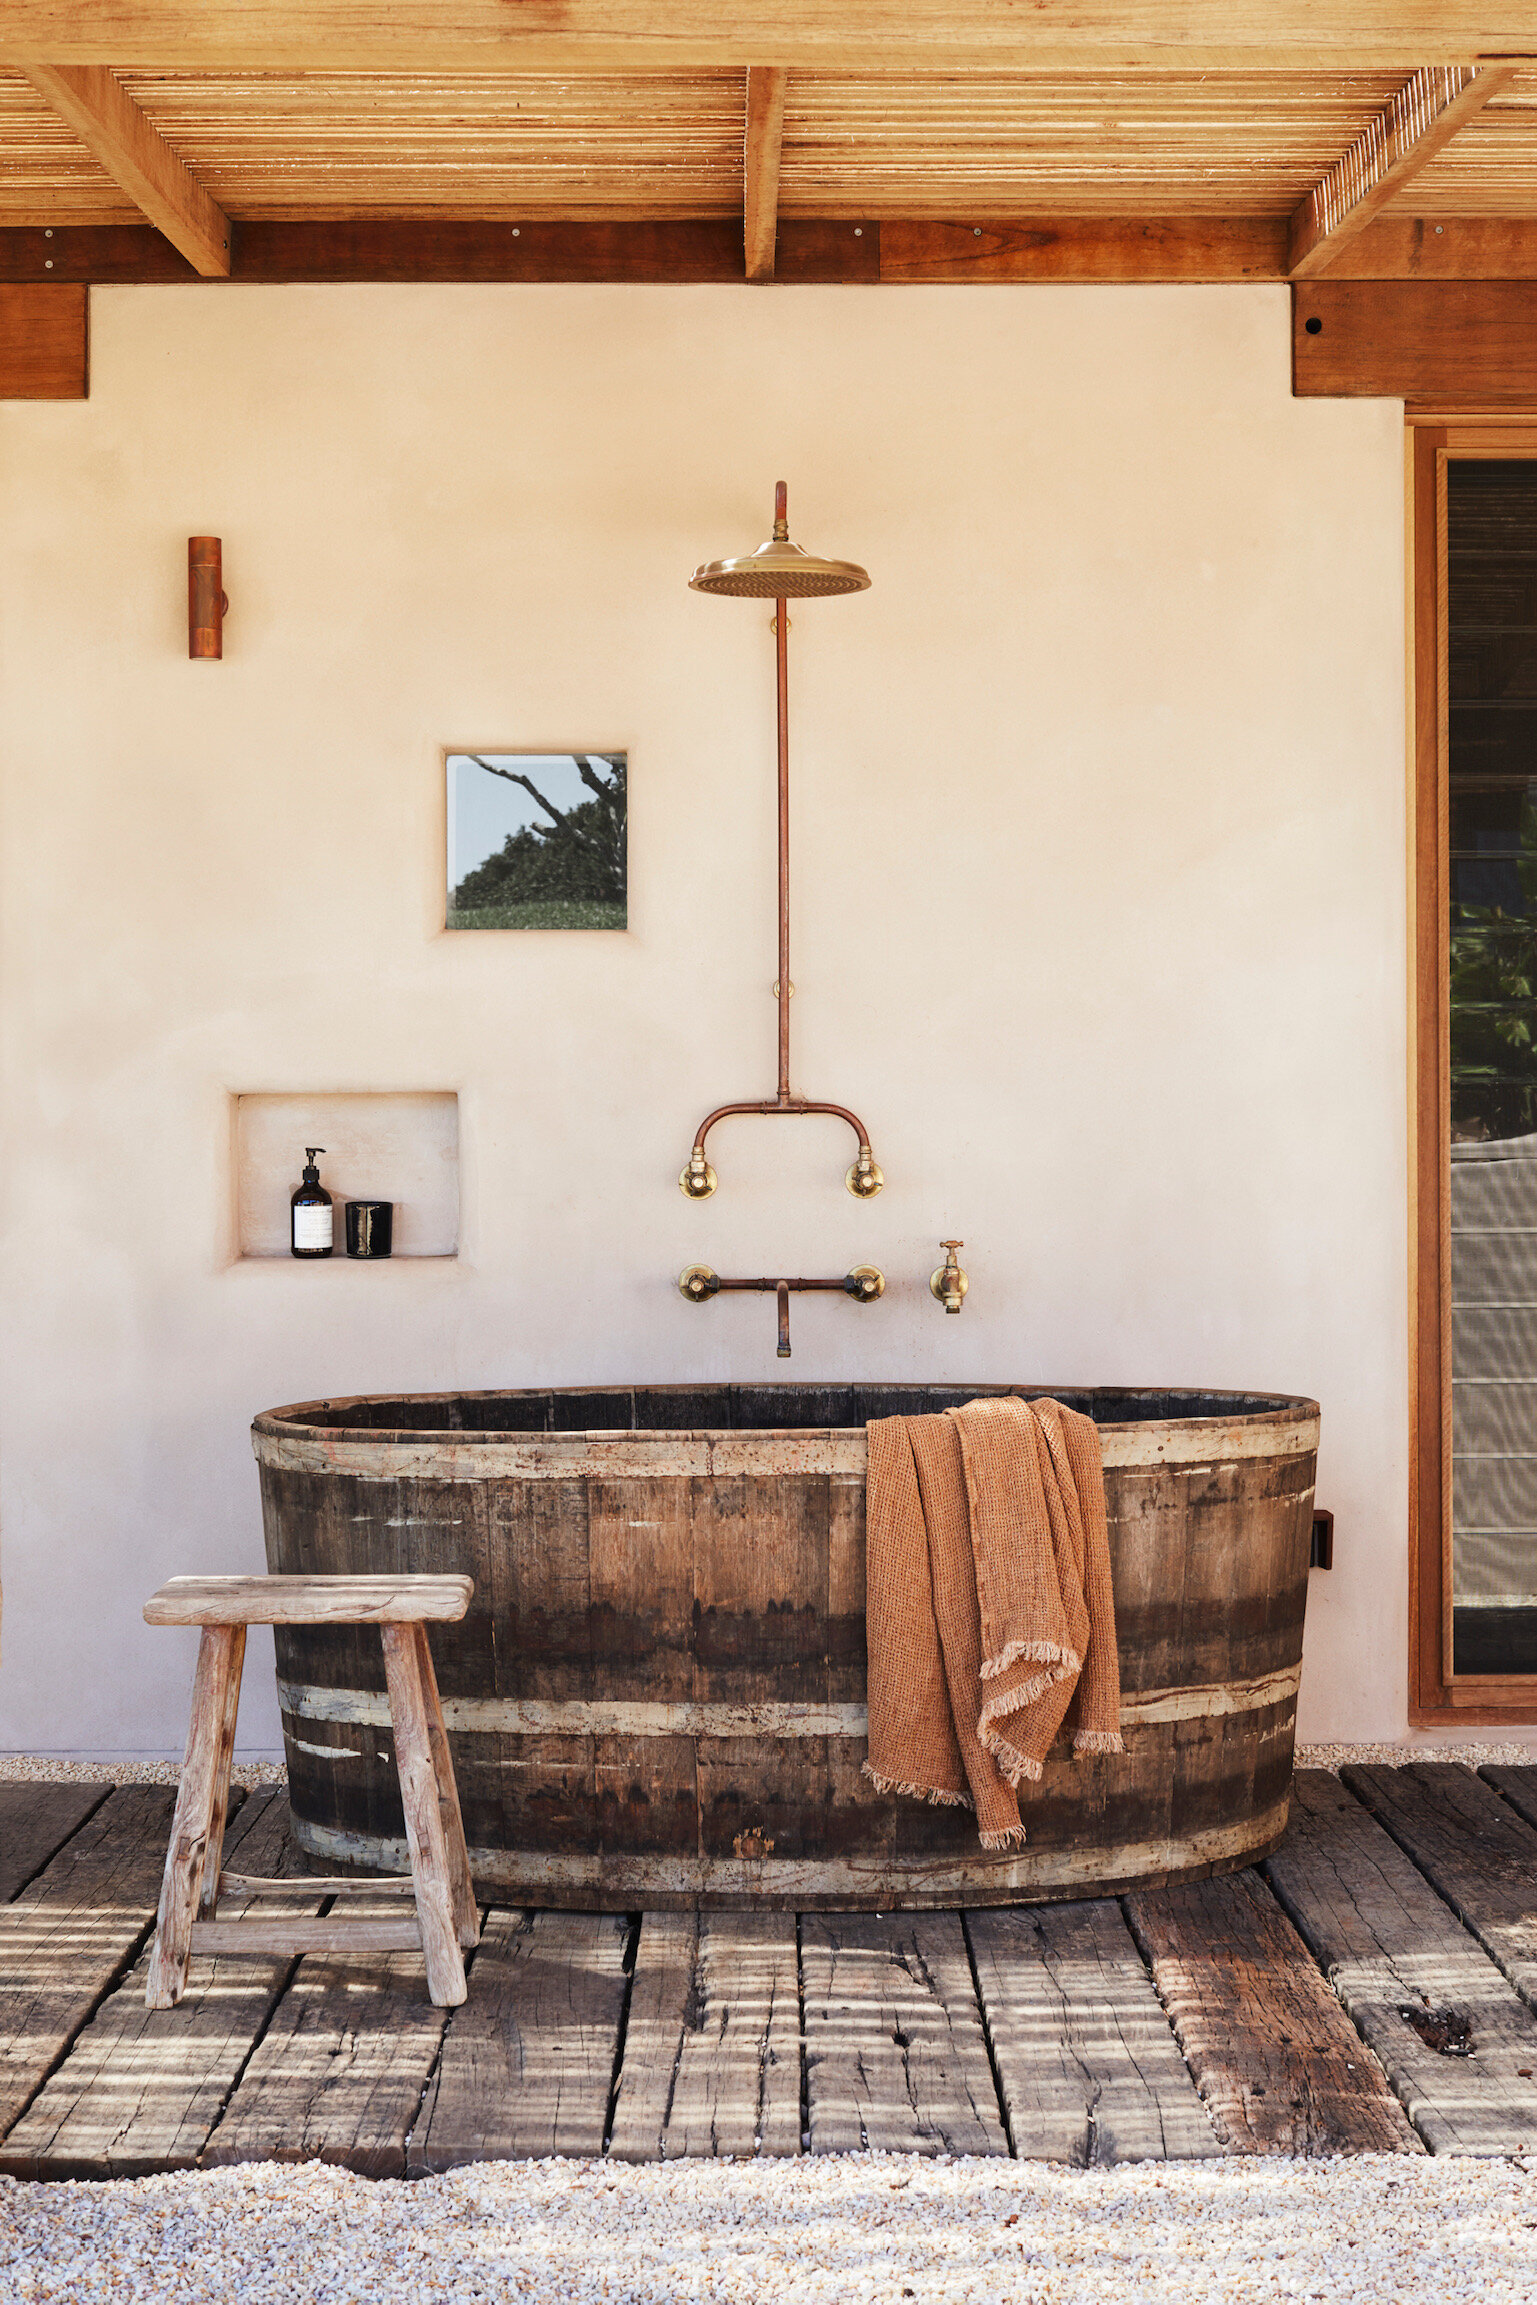 At The Range, the rustic timber outdoor bathtub takes pride of place on the outdoor deck. Photo - Alicia Taylor Photography.